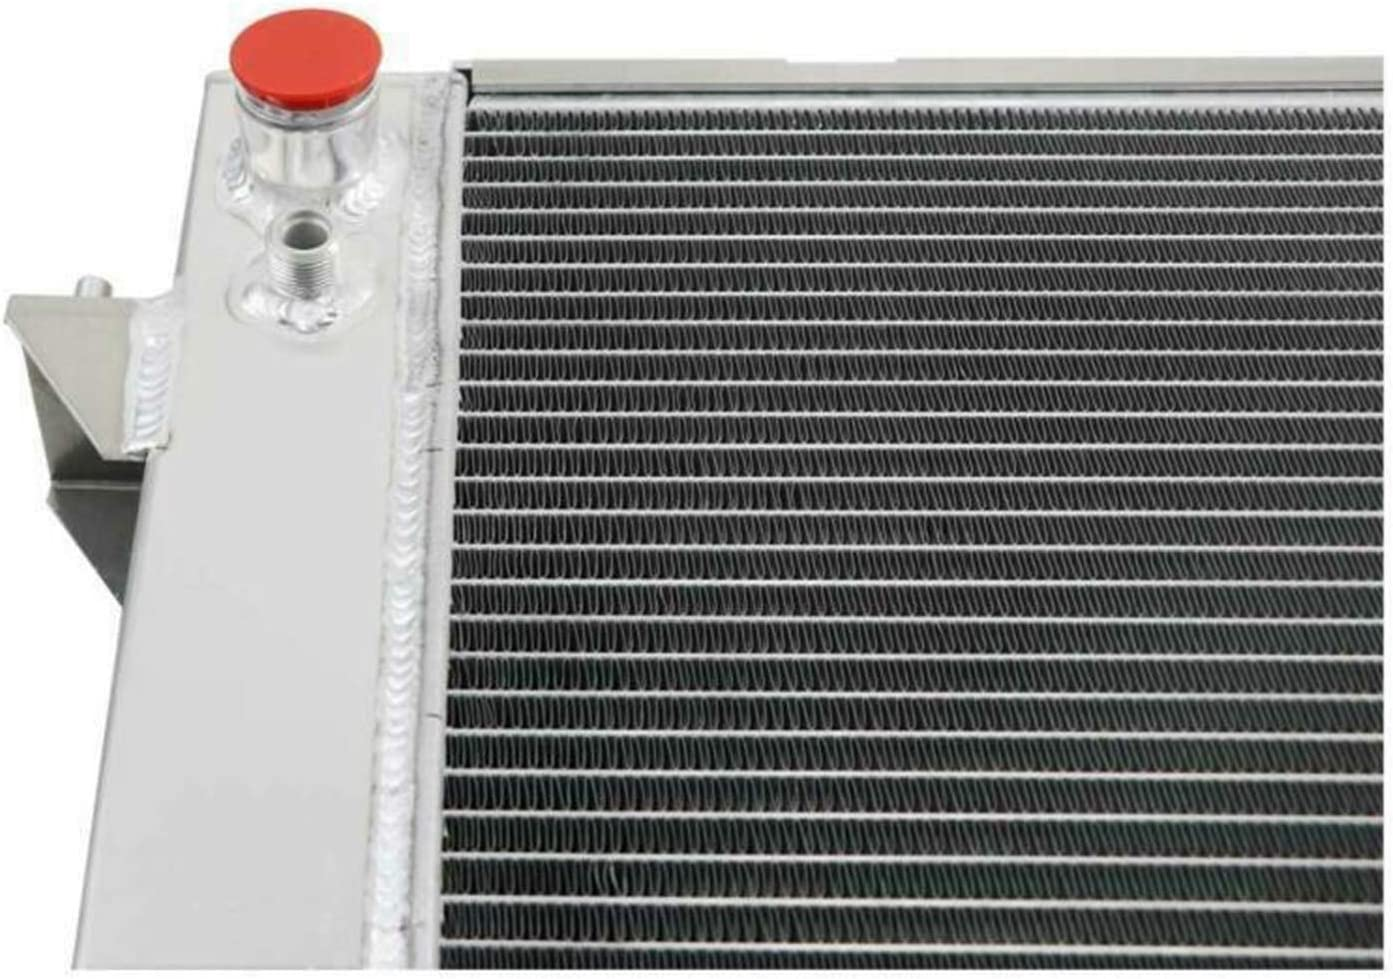 OzCoolingParts 86-98 Land Rover Radiator 3 Row Core Aluminum Radiator for 1986-1998 87 88 89 90 91 92 93 94 95 96 97 Land Rover Discovery Series//Range Rover Series 3.9L 4.0L V8 Engine